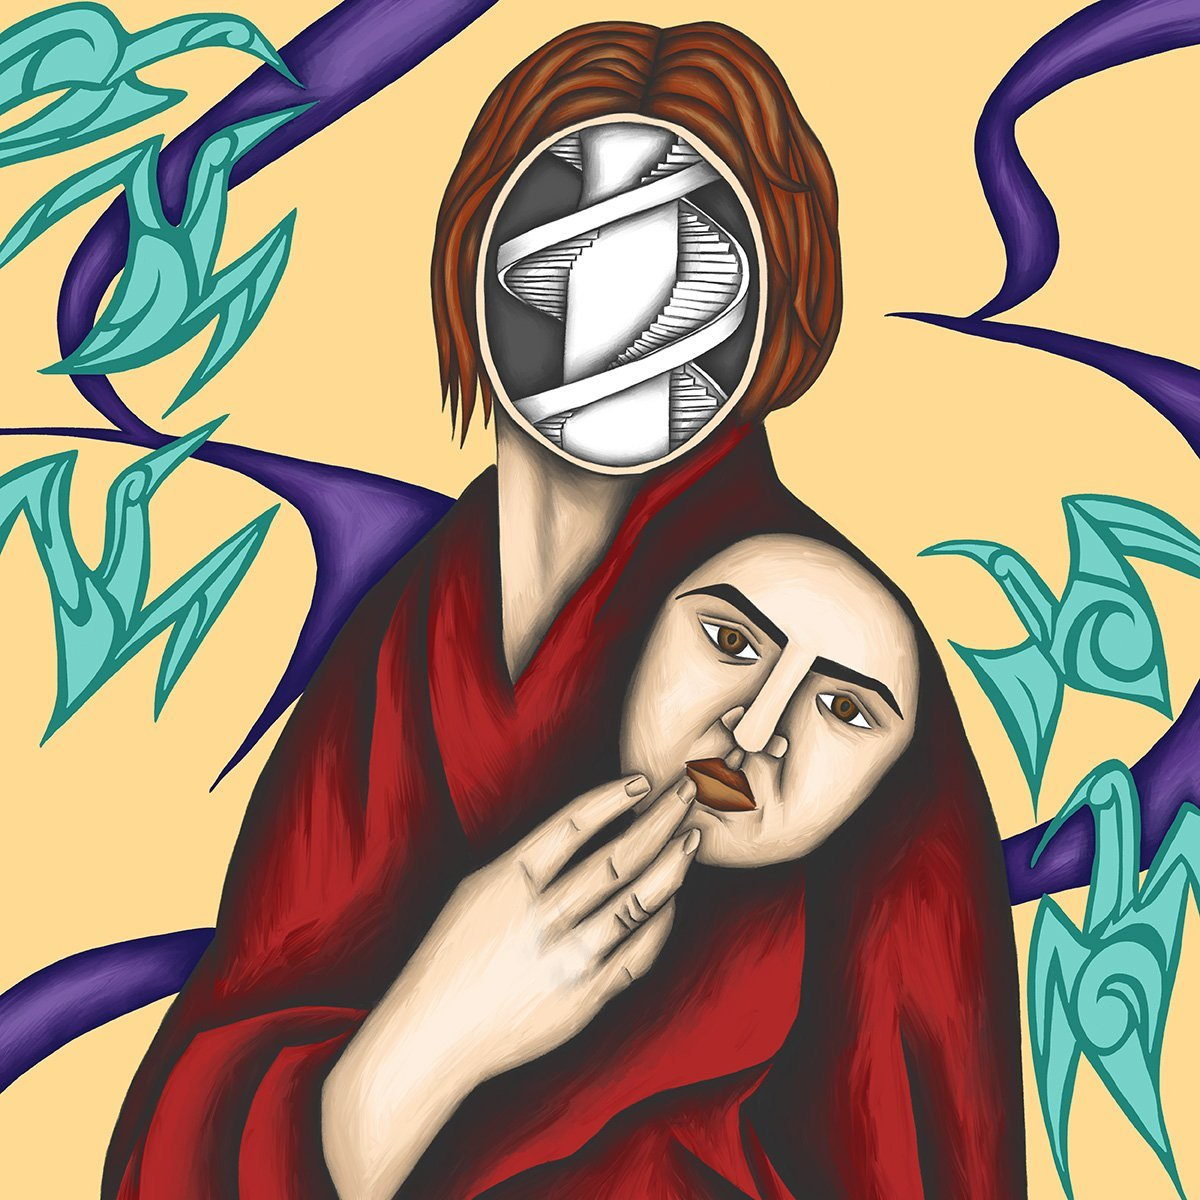 The image shows a piece of artwork by Jina Wallwork. It is a digital painting of a woman with a mask. Stylistically this piece of artwork has links with surrealism.